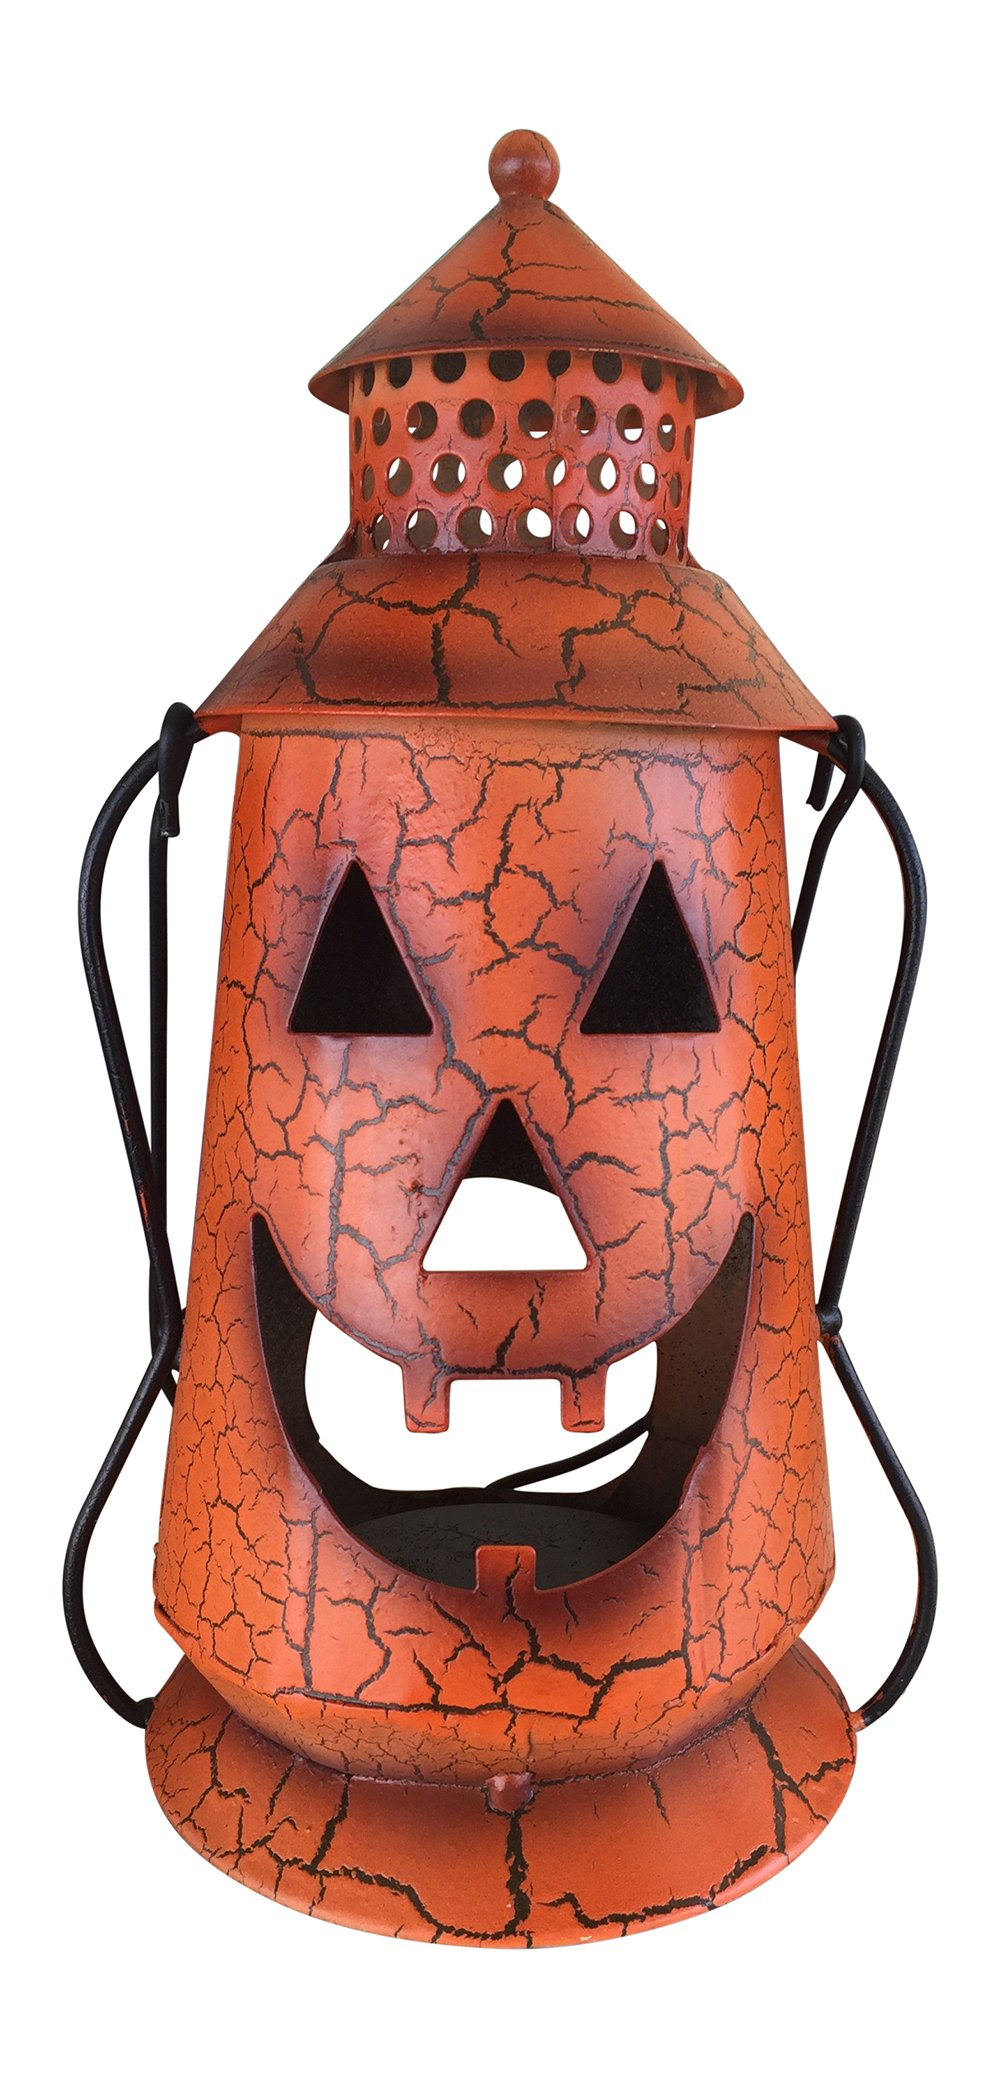 Halloween Pumpkin Rustic Lantern with Handle, - Metal Jack O Lantern Fall Decoration, Standing or Hanging, Holds Pillar Candle - Indoor, Outdoor, by Clovers Garden